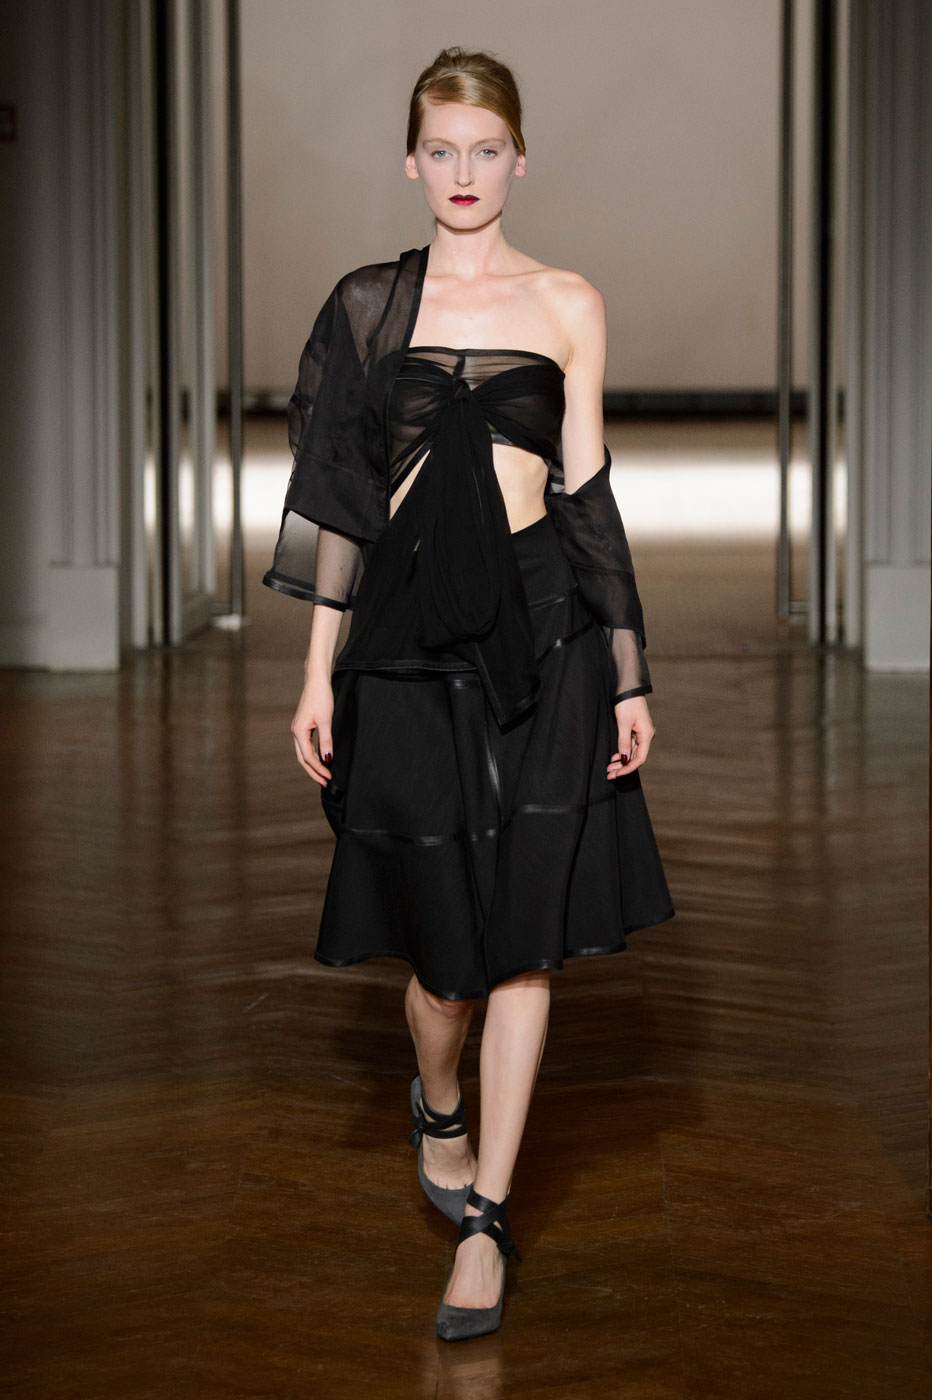 Gustavolins-Prive-fashion-runway-show-haute-couture-paris-spring-2015-the-impression-41